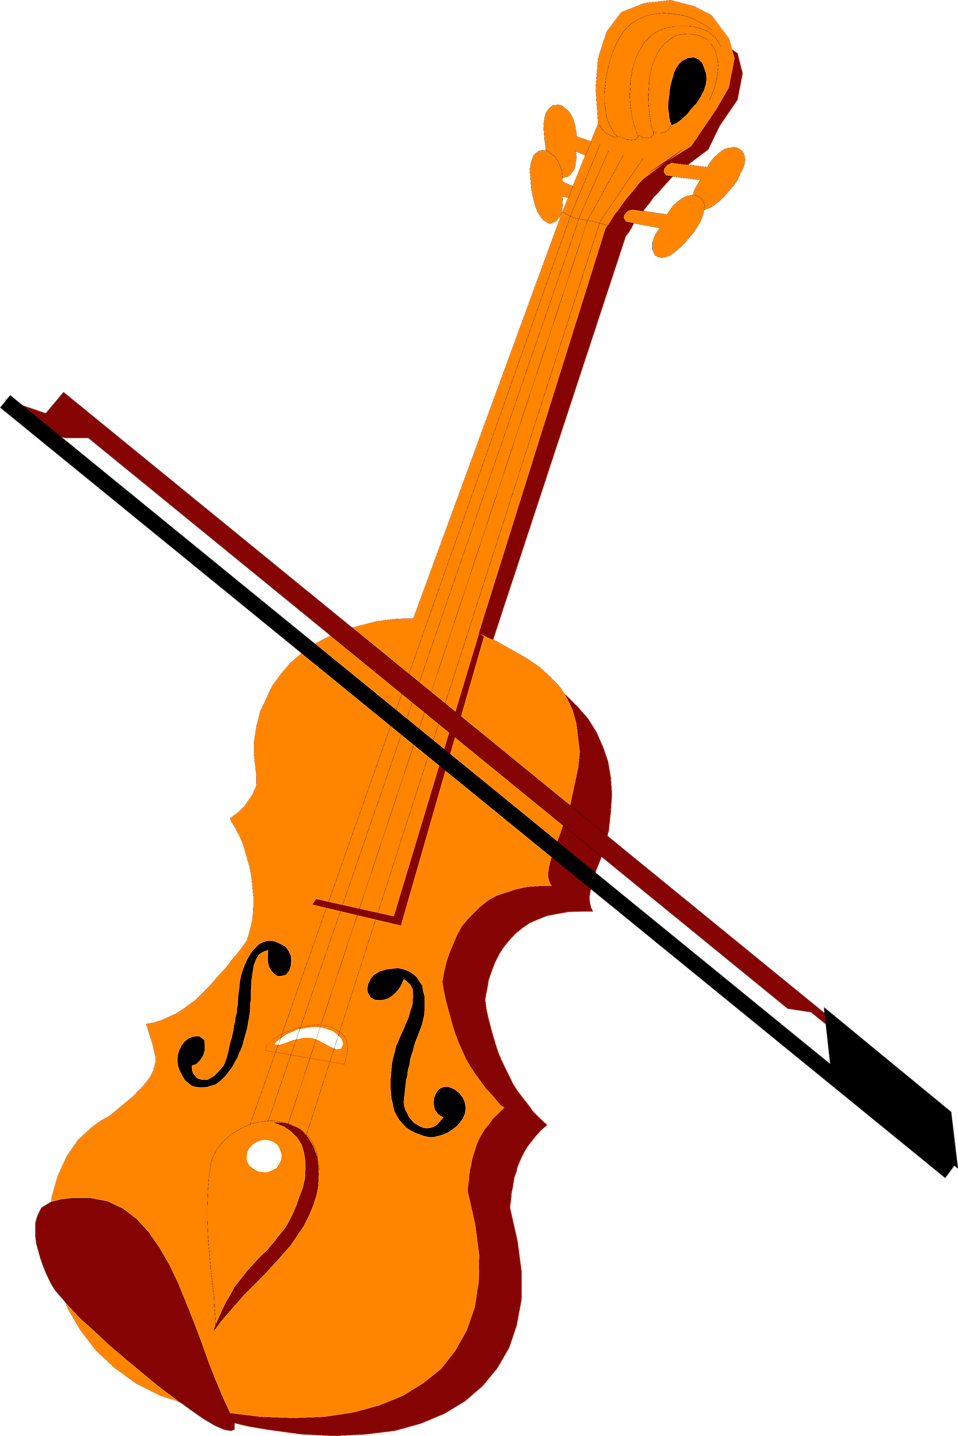 Violin clipart png. Free stock photo illustration